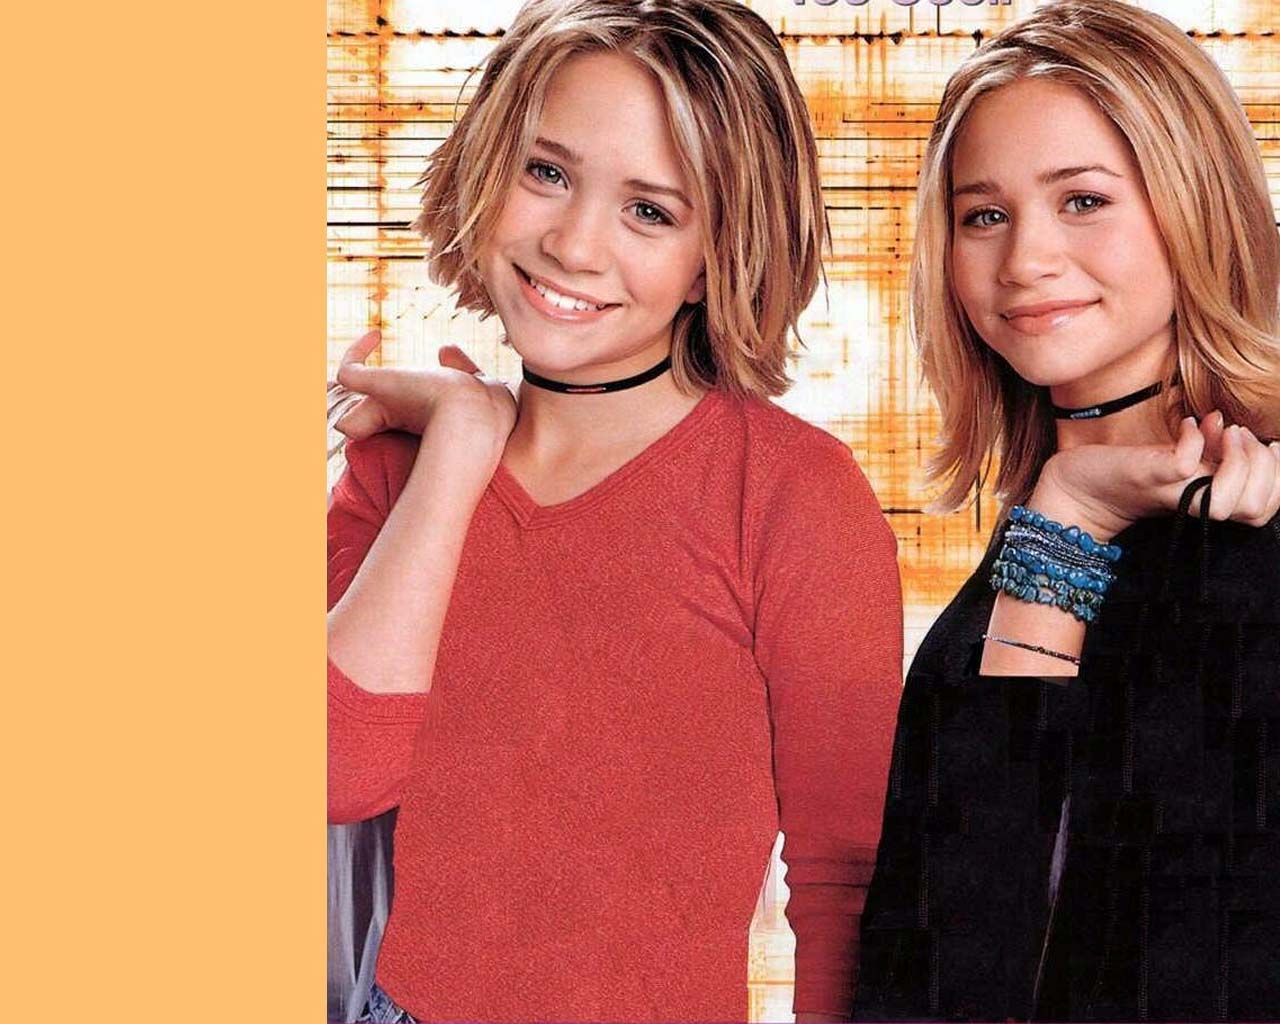 olson twins So Little Time 208 best Mary-Kate and Ashley images on Pinterest | Ashley olsen, Olsen  twins and Mary kate ashley